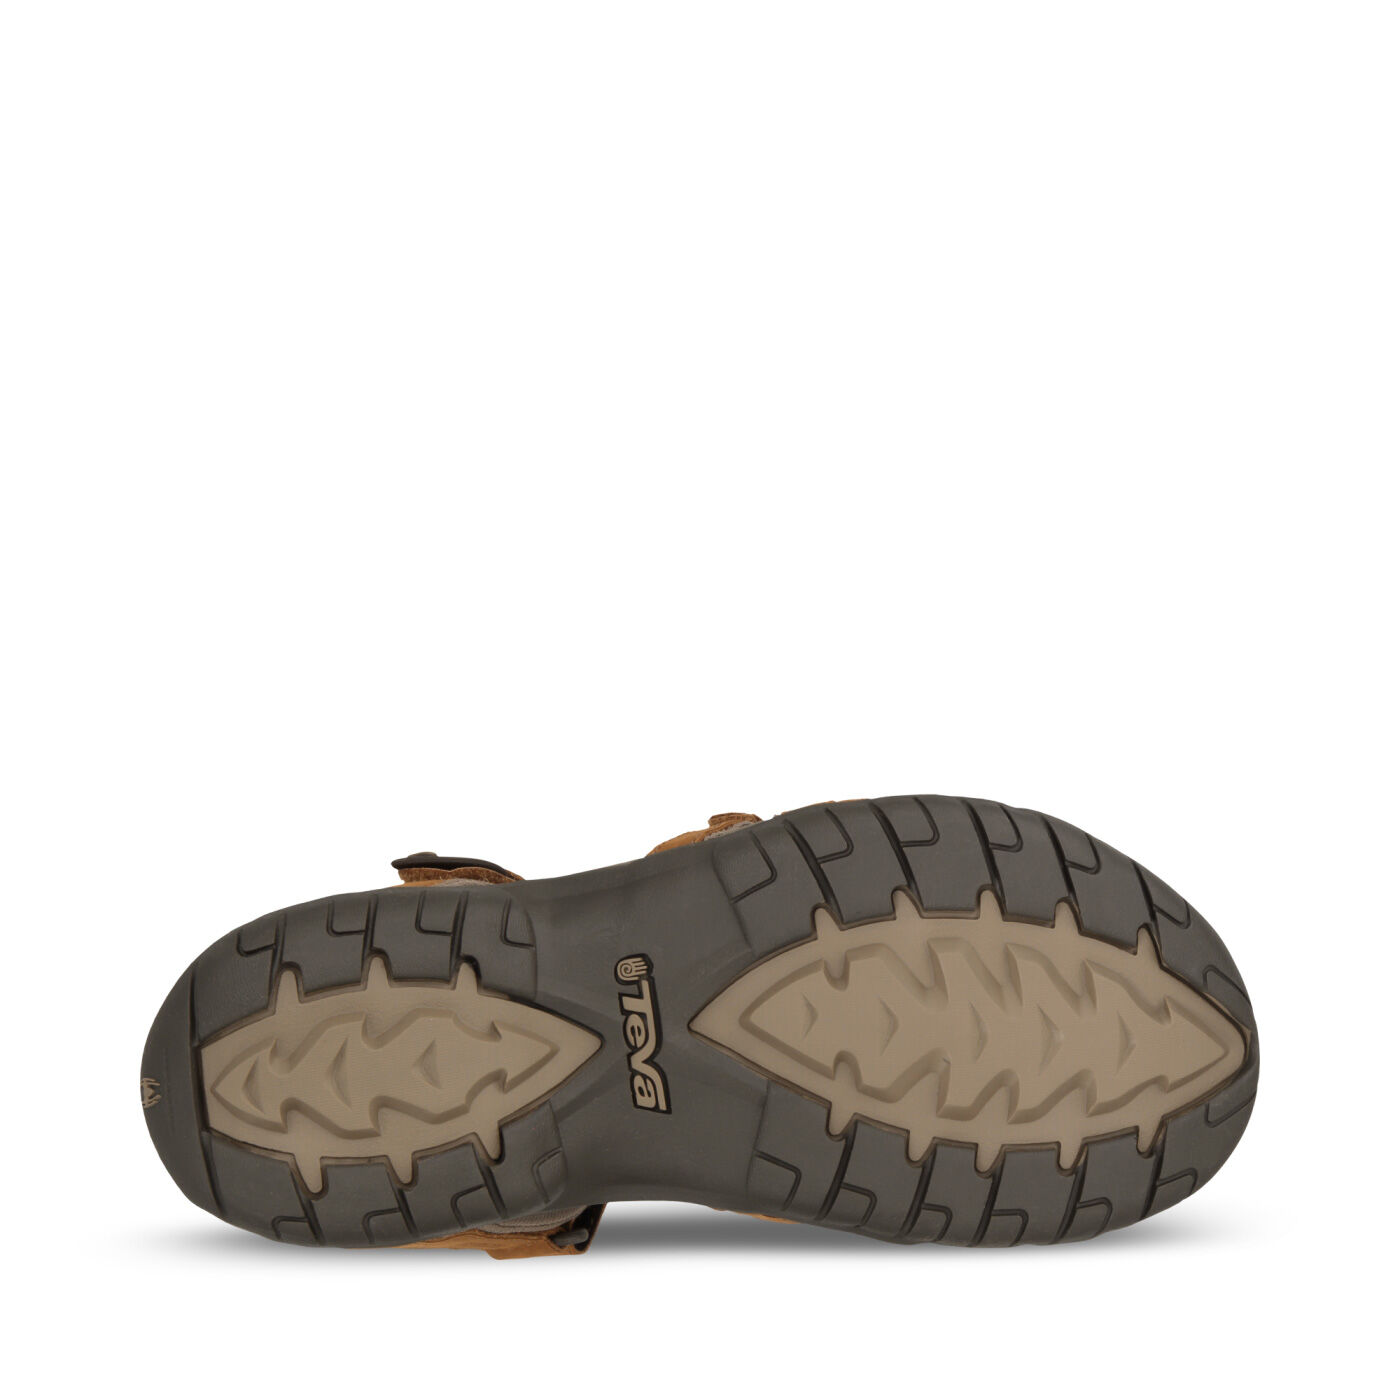 Teva W Tirra Leather Sandals Rust 4177// Mountain Footwear Women/'s Sandals